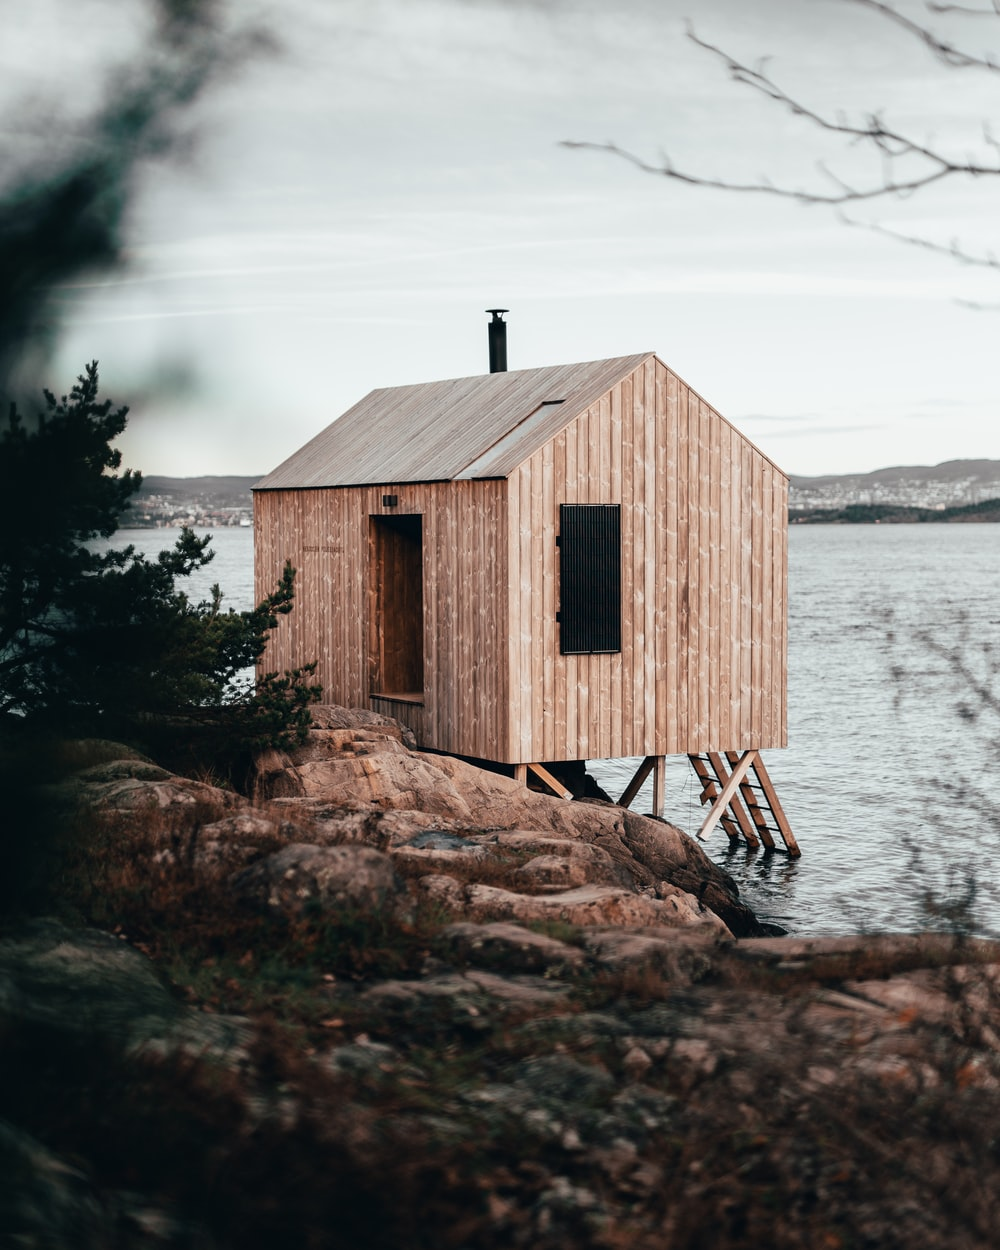 brown wooden house on brown rock near body of water